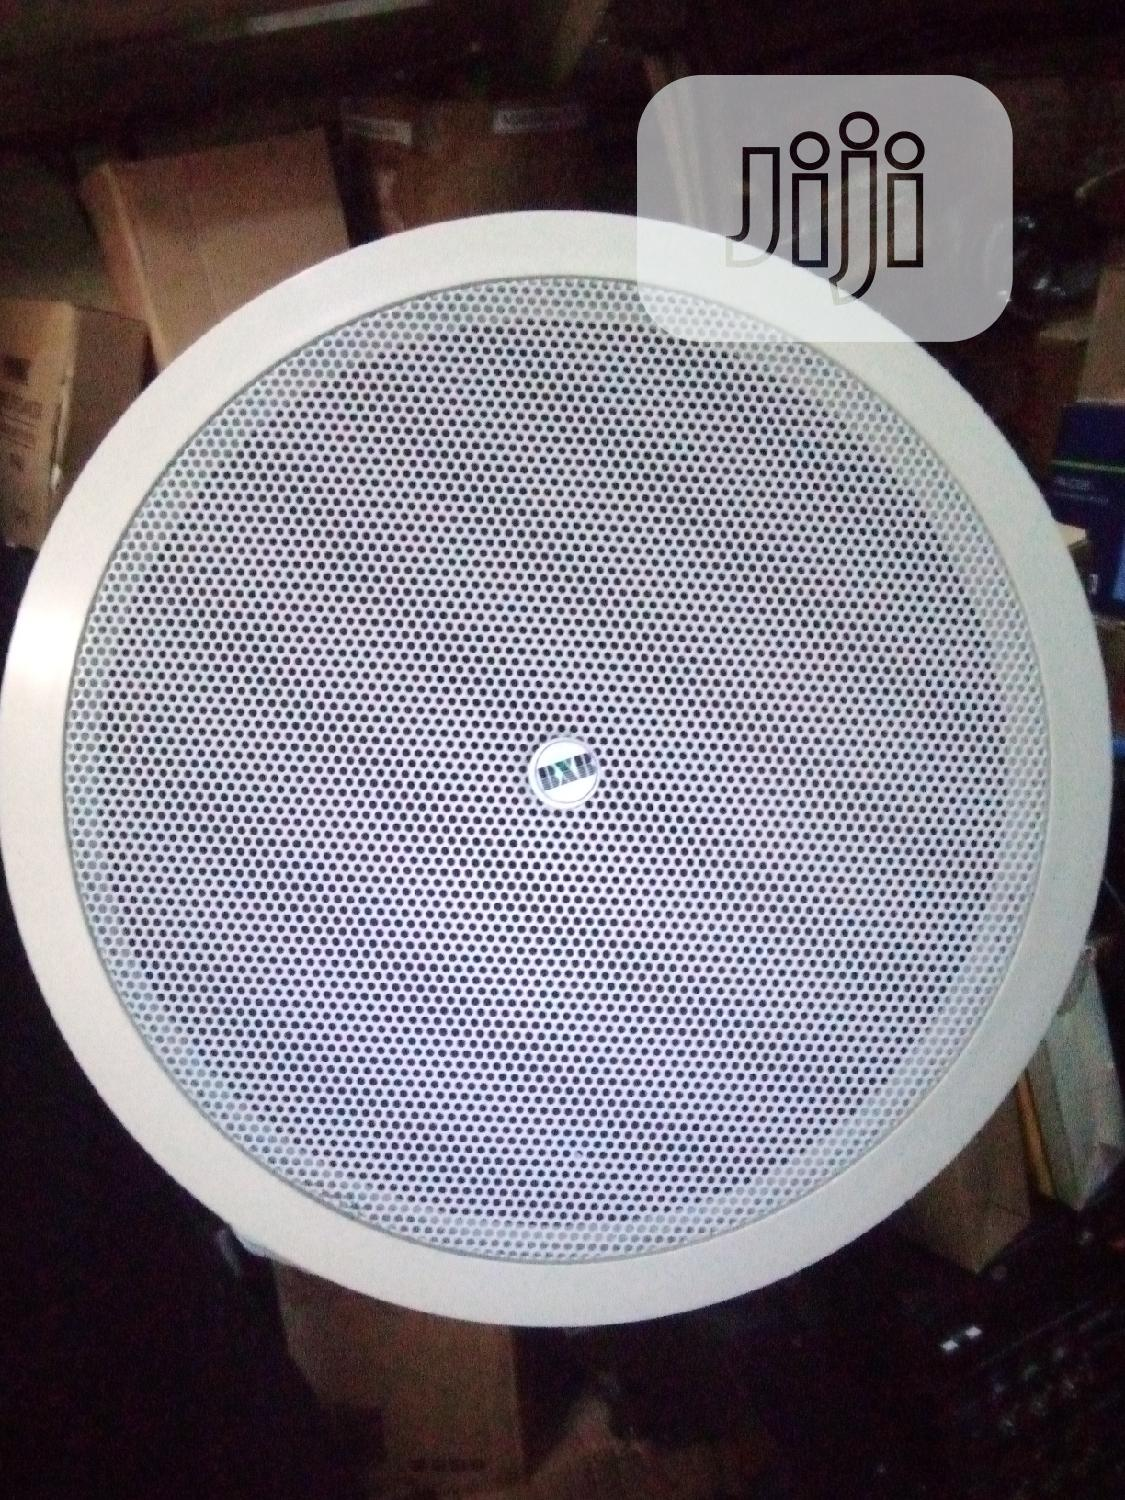 BXB Ceiling Speaker 40watts | Audio & Music Equipment for sale in Ojo, Lagos State, Nigeria